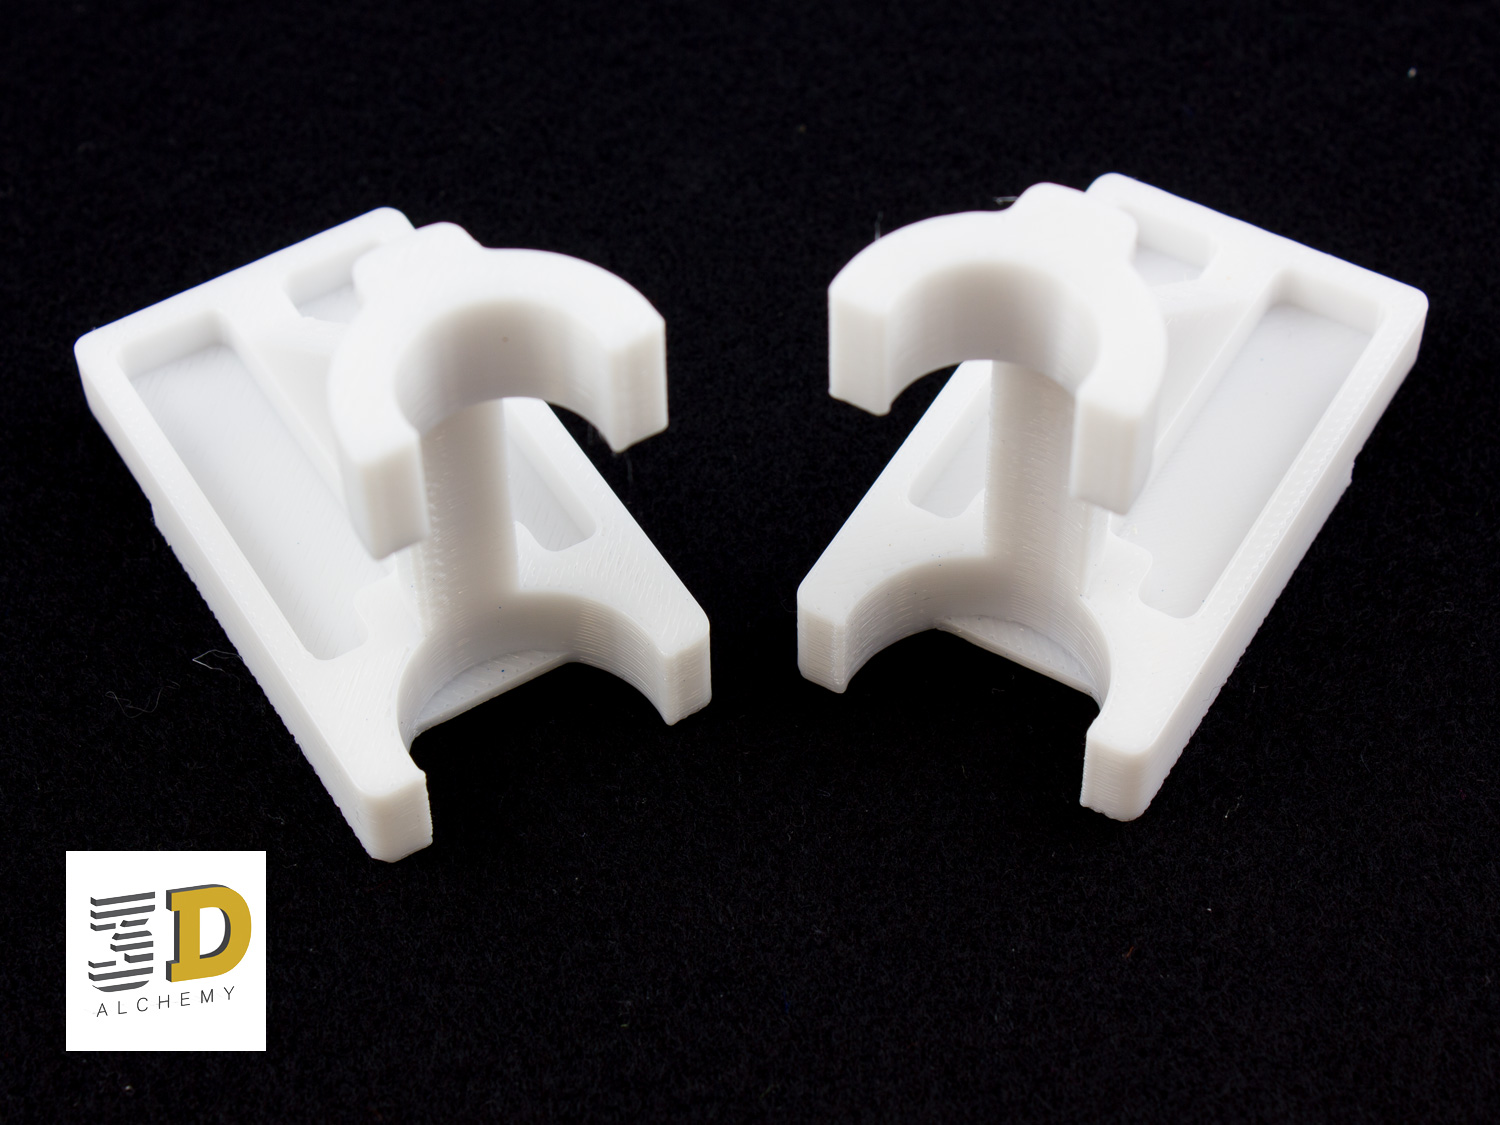 Factory jigs and fixtures 3d printed in Polycarbonate